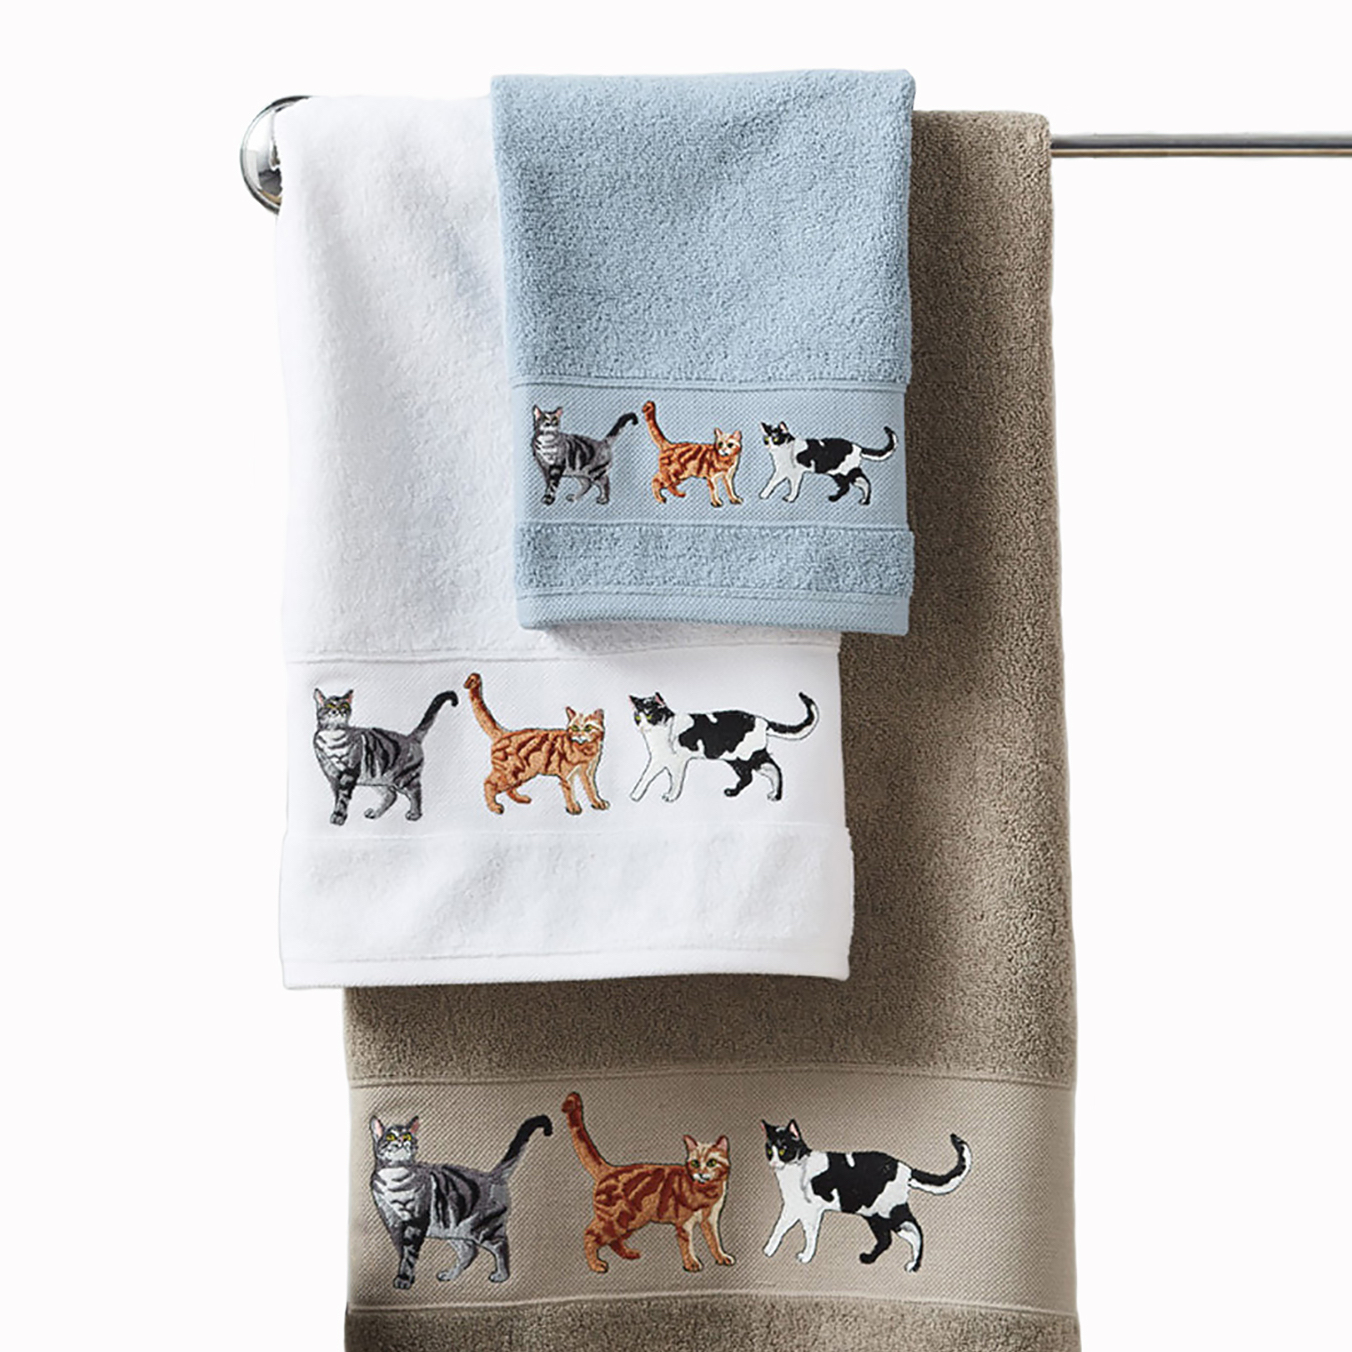 Cat Parade Towels